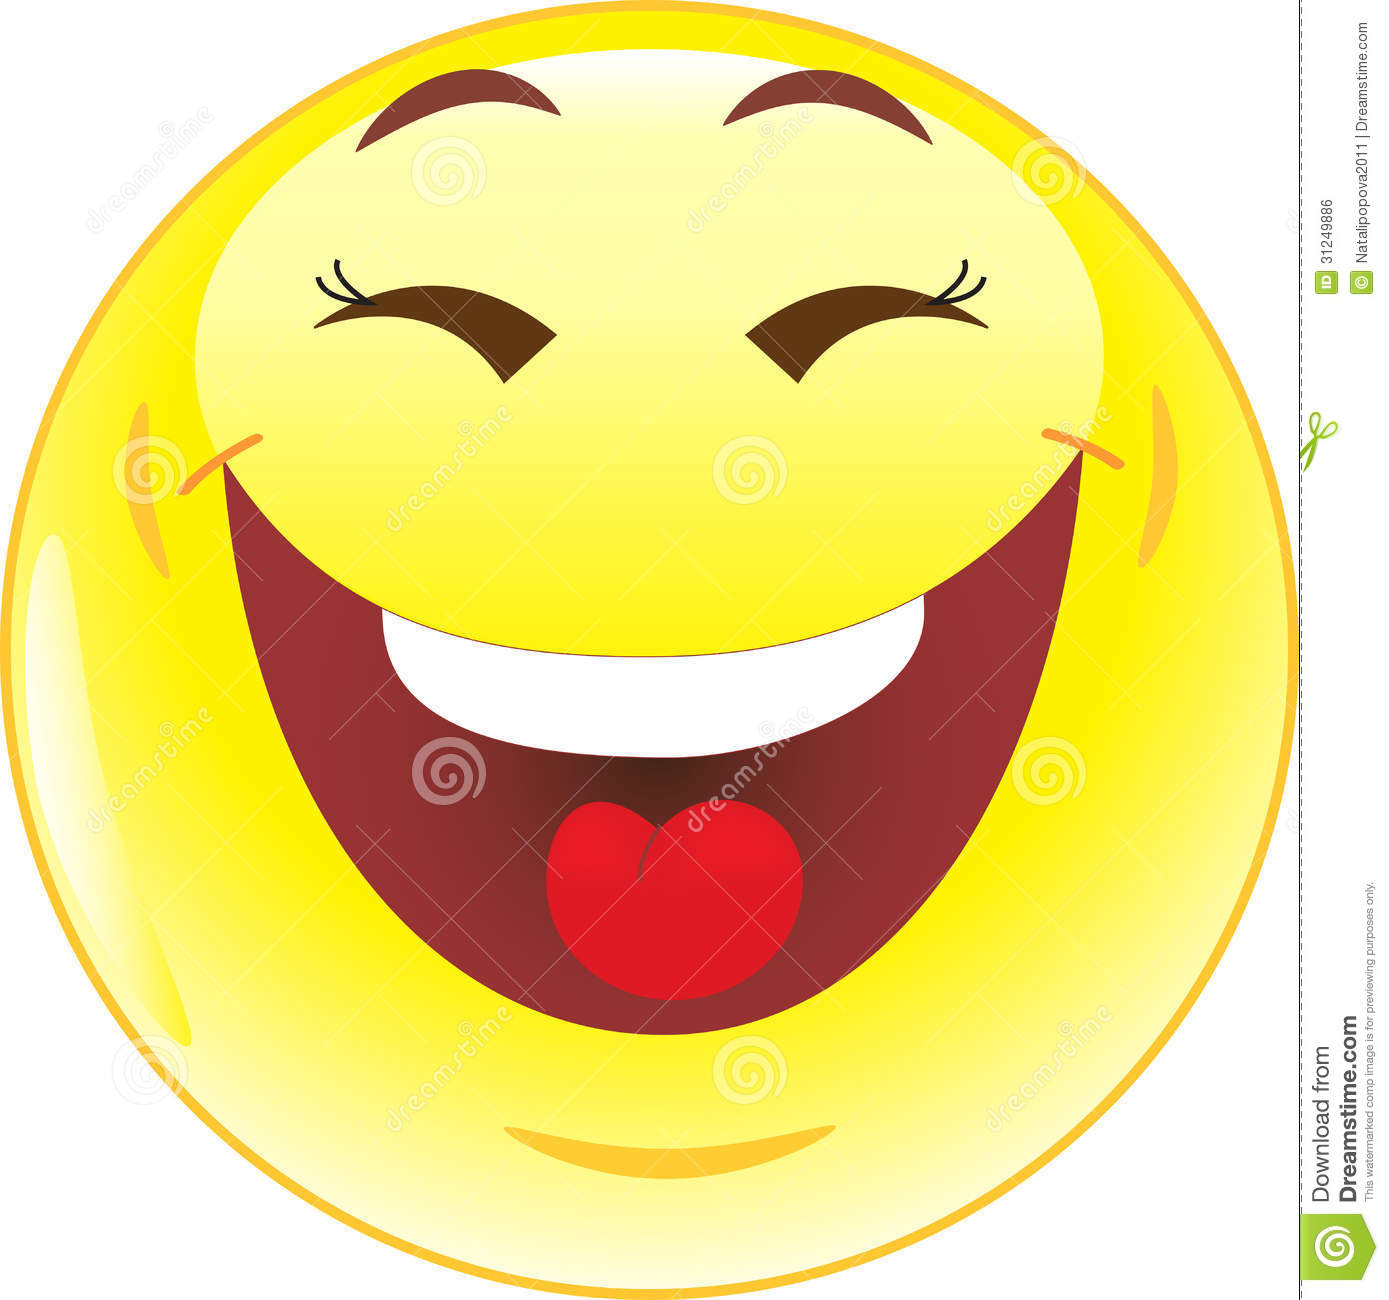 Funny Smile, Smile, Icon Royalty Free Stock Image - Image: 31249886